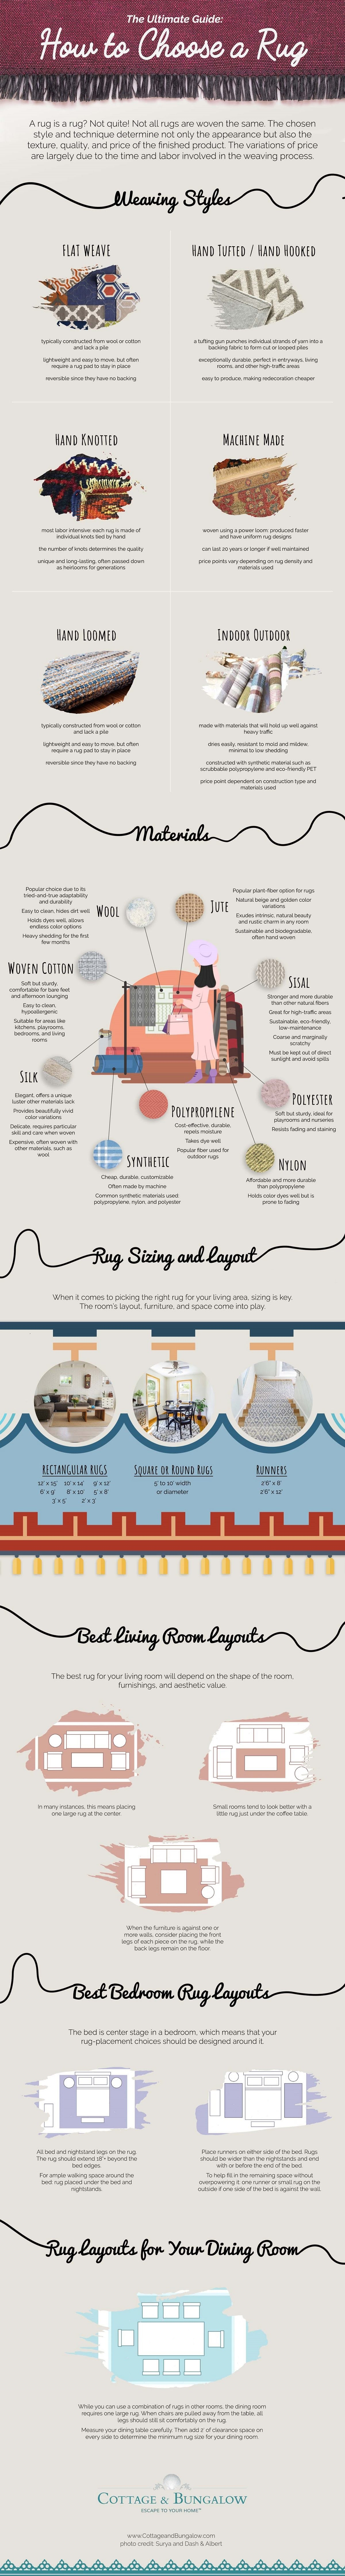 A Rug is Not Just a Rug: The Ultimate Guide to Buying Rugs - Infographic